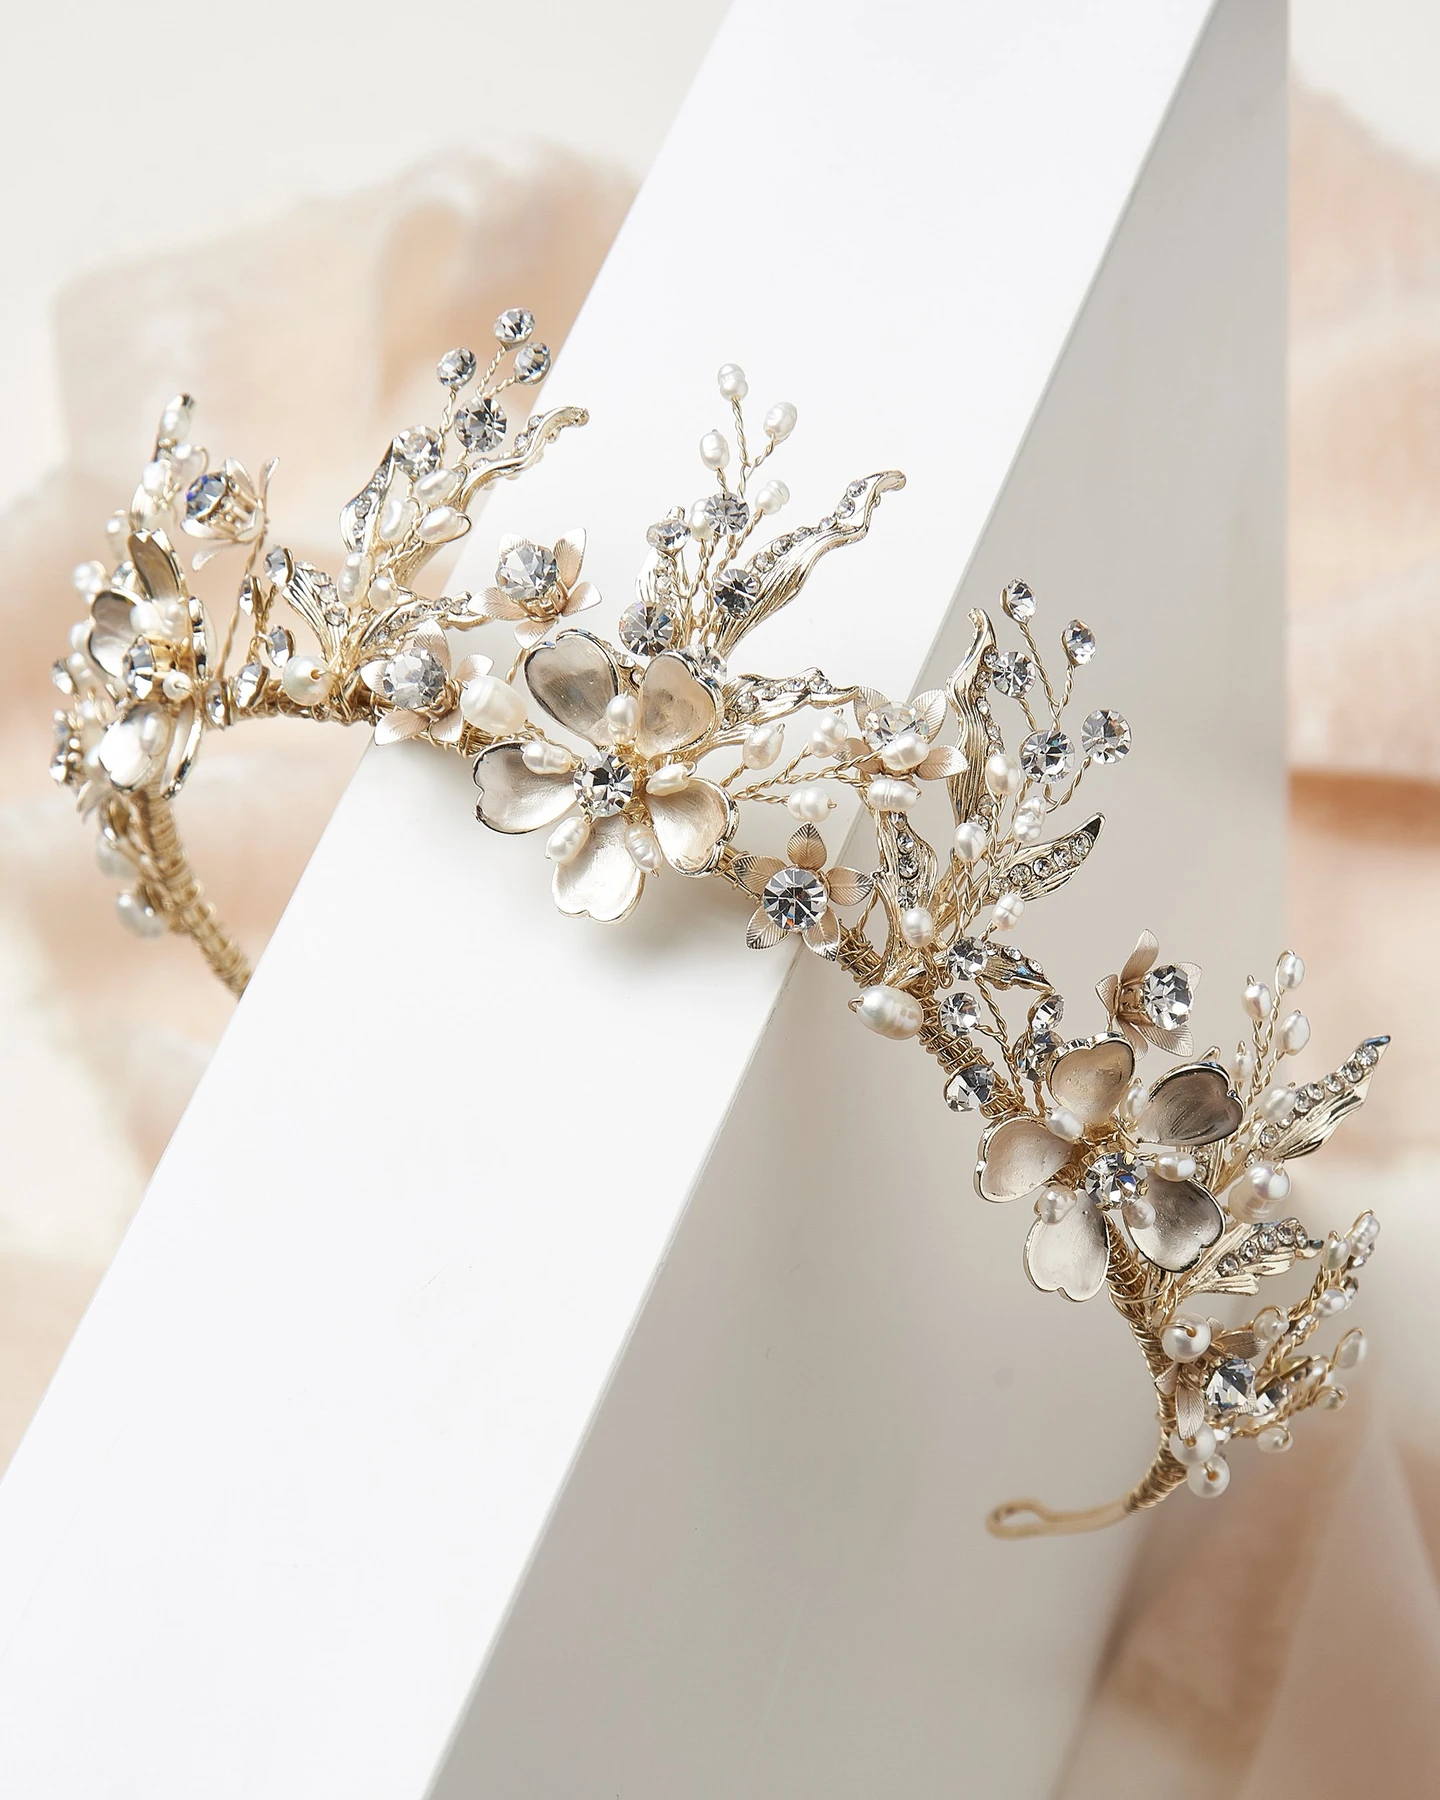 Bling wedding accessories Rose Gold Floral Bridal Tiara with Glittering Rhinestones